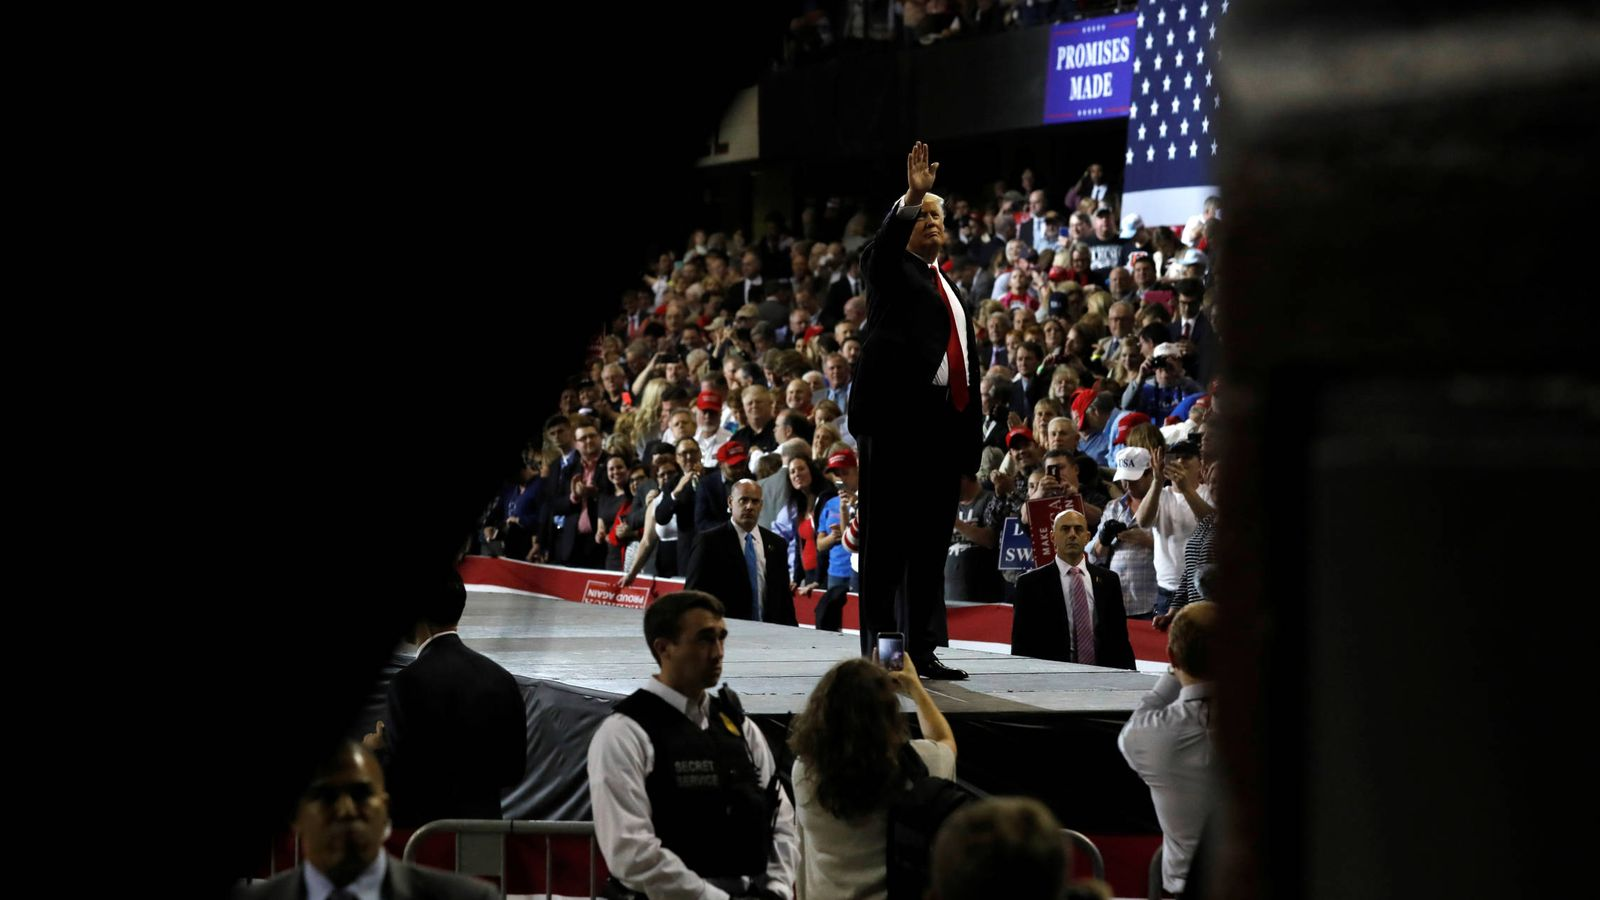 Foto: El presidente Donald Trump durante un mitin en el Kentucky Exposition Center, en Louisville, Kentucky, el 20 de marzo de 2017 (Reuters).